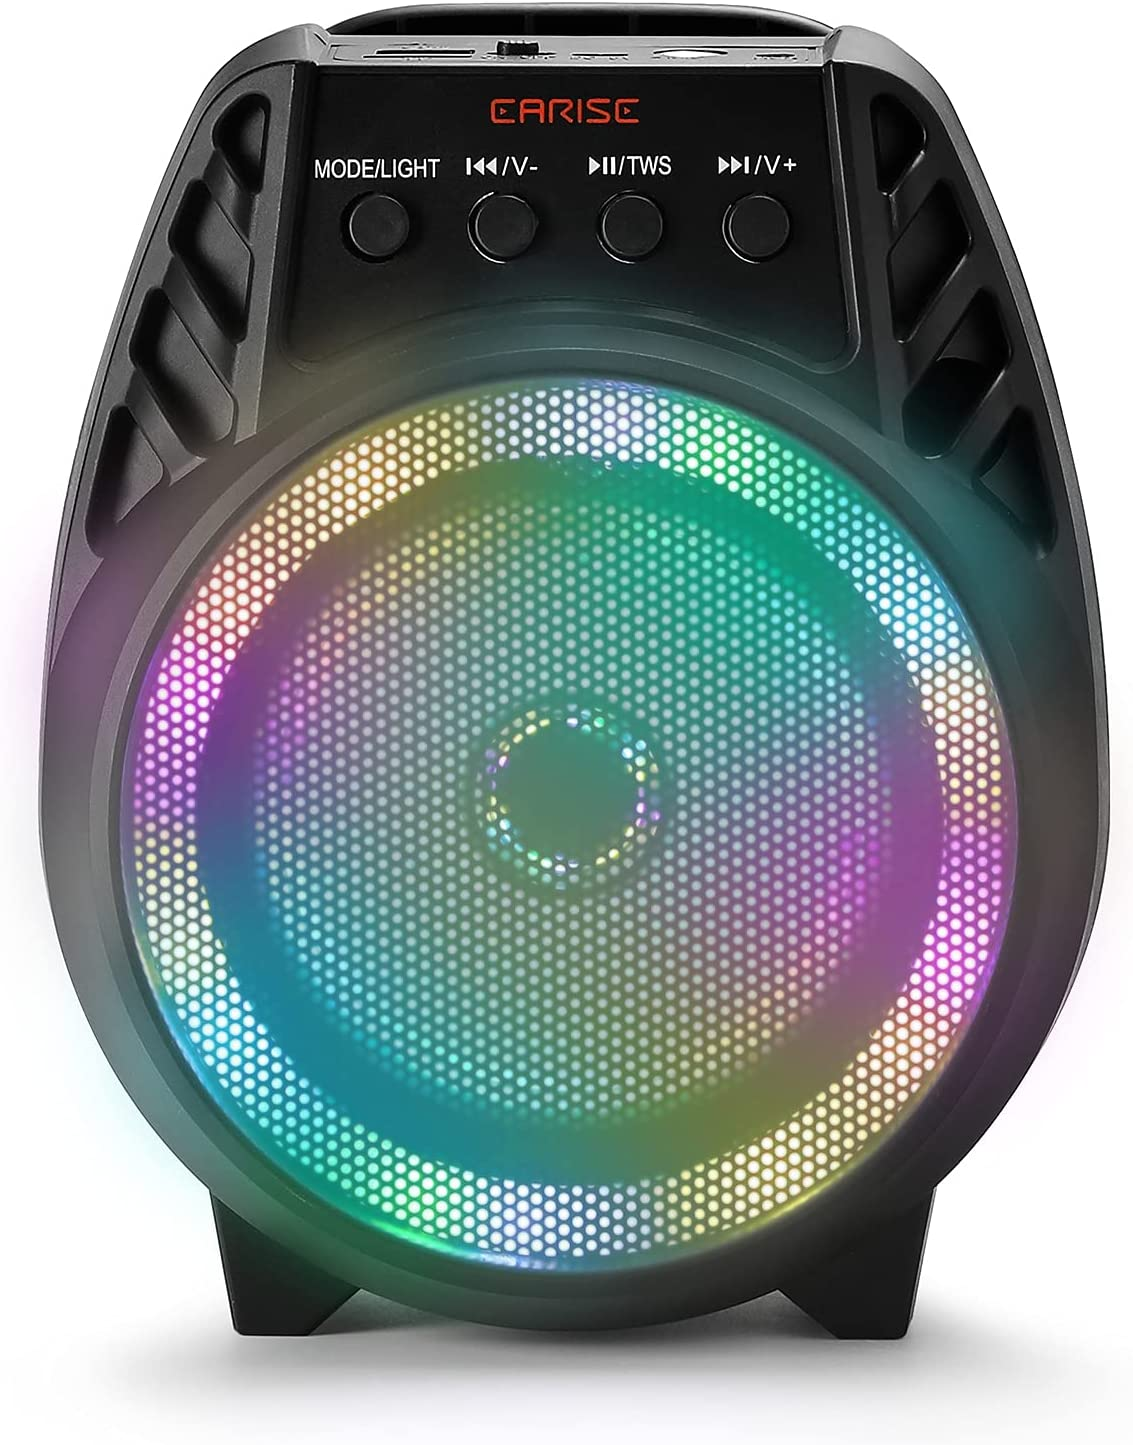 EARISE D51 Bluetooth Speaker, Portable Wireless Speaker with RGB Lights, Stereo Sound, TWS Dual Pairing Speaker for Home, Office, Outdoors and Travel